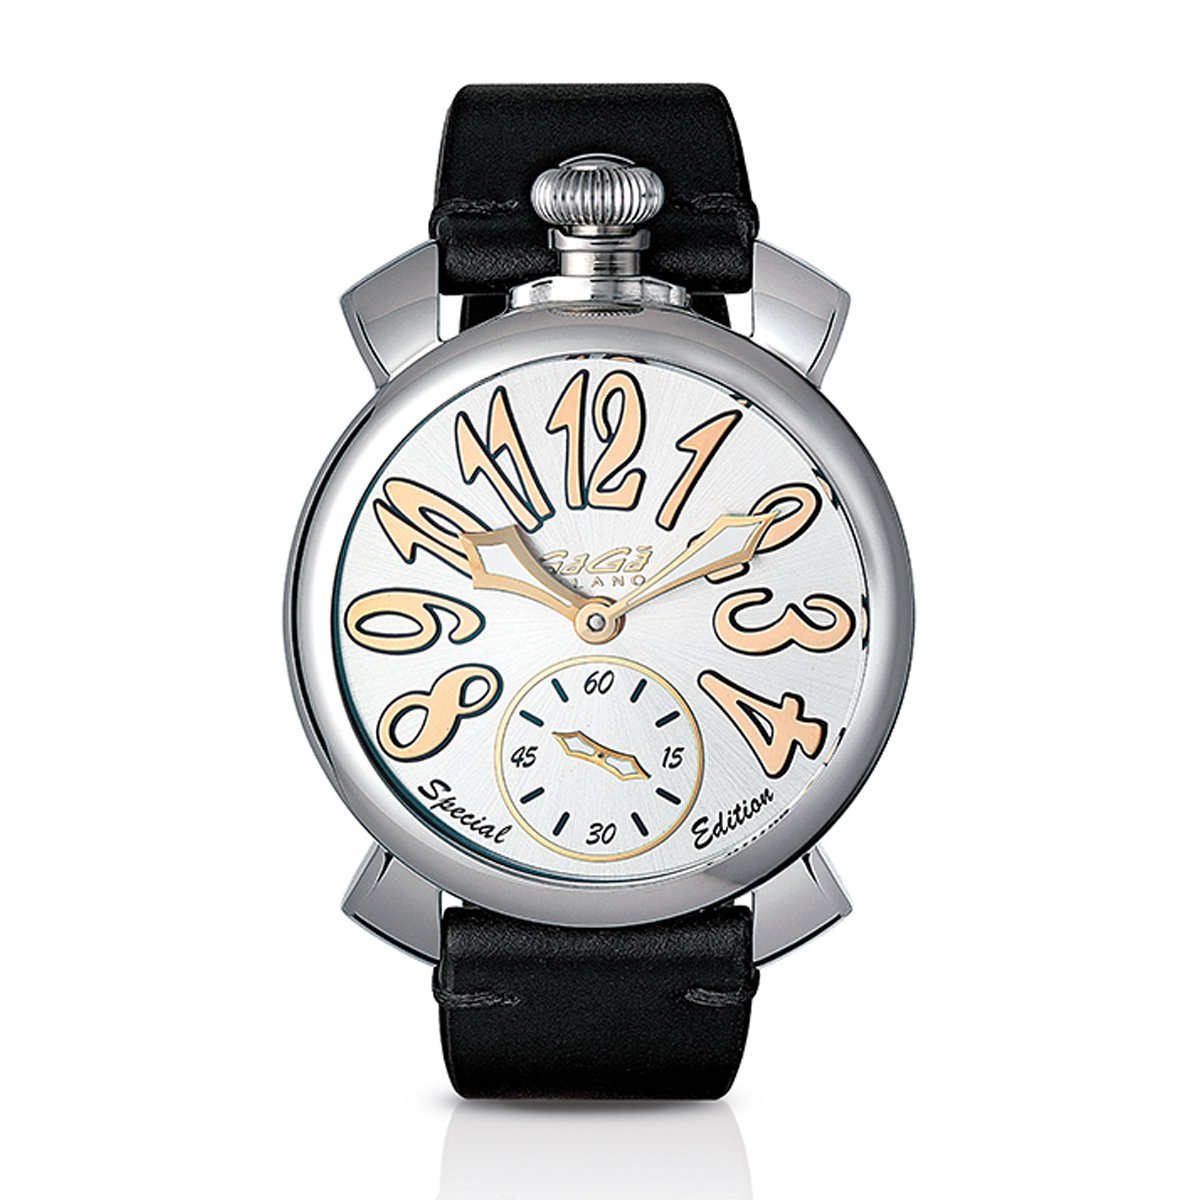 GaGà Milano Manuale 48MM Steel Special Edition - Watches & Crystals